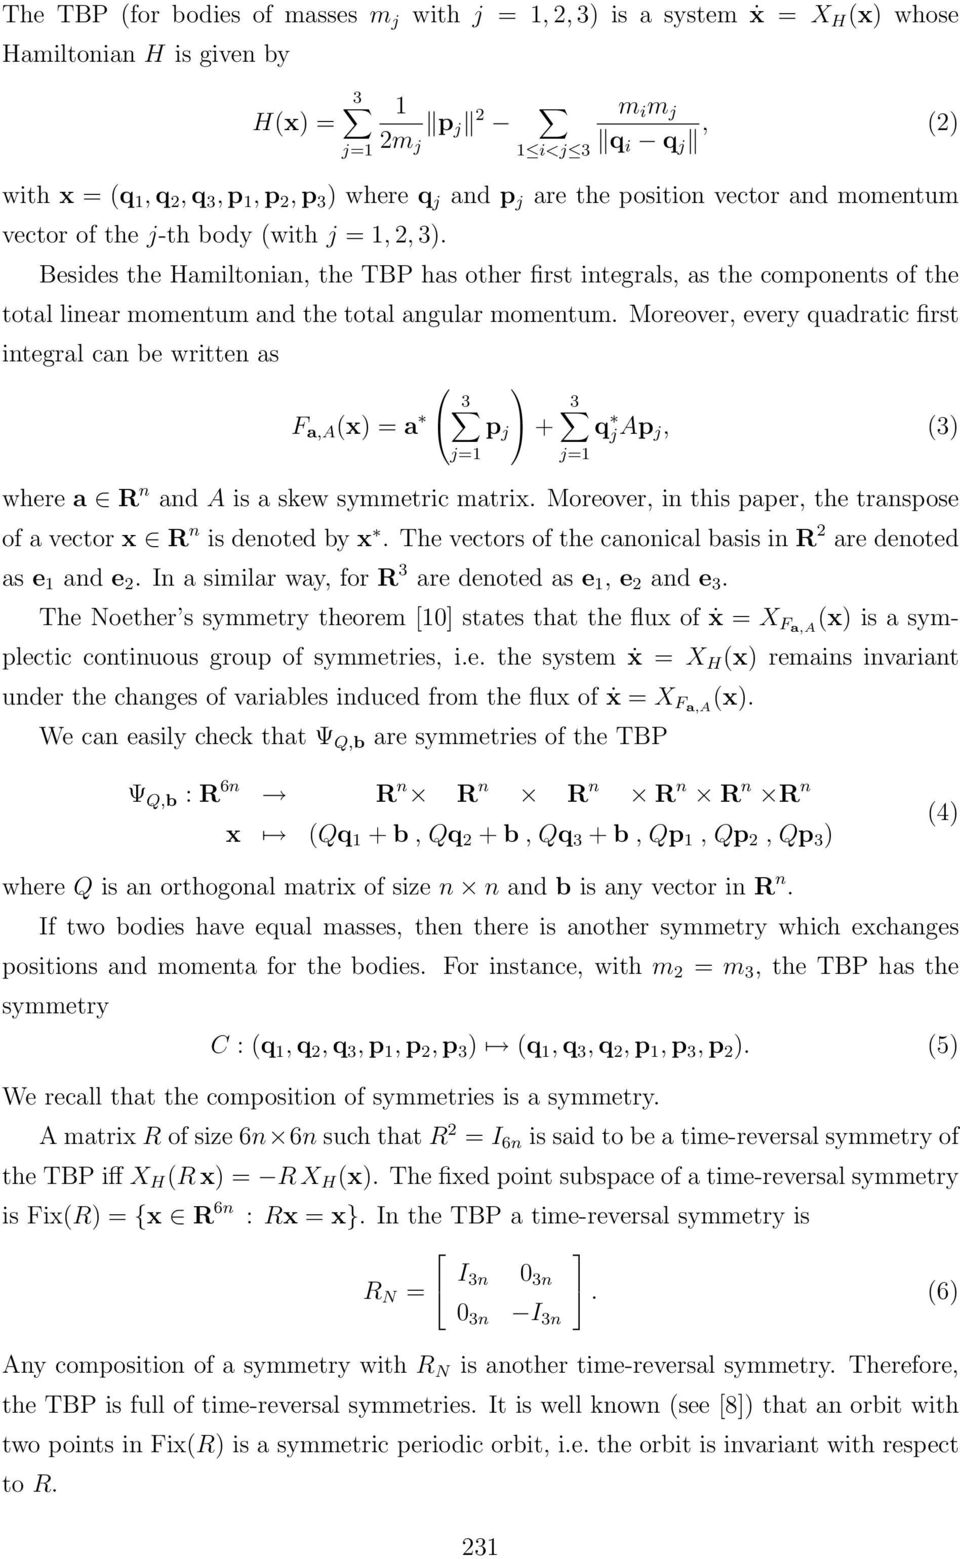 Besides the Hamiltonian, the TBP has other first integrals, as the components of the total linear momentum and the total angular momentum.